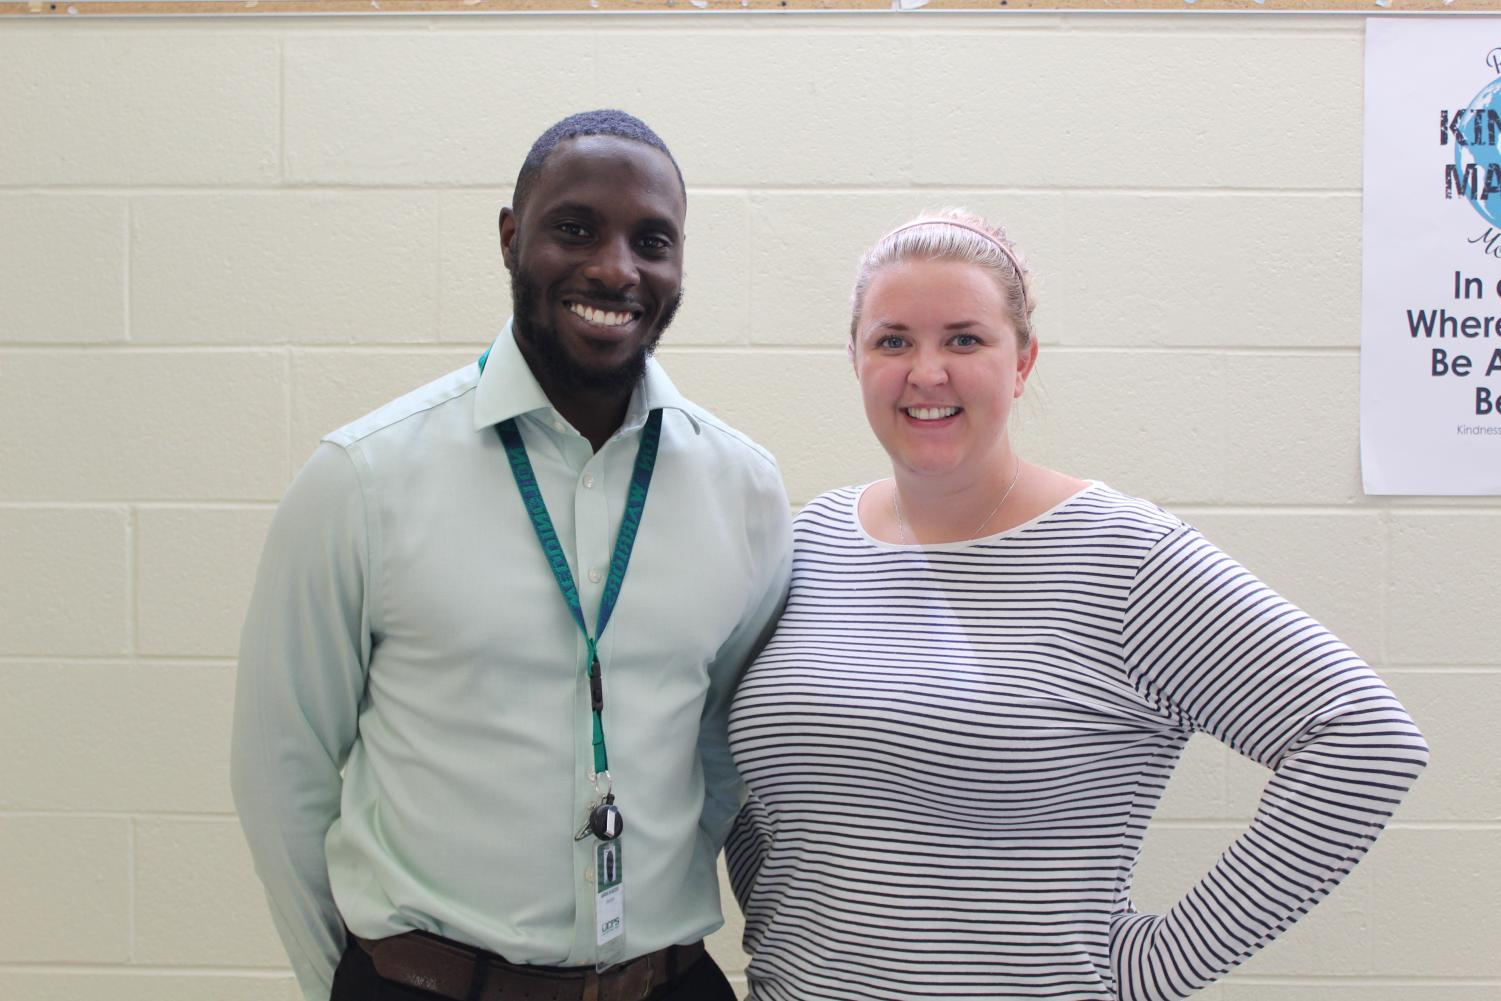 Teachers Mrs. Miller and Mr. Senesse are both new to Weddington this year, moving from England through a teacher exchange program. Mrs. Miller and Mr. Senesse represent just two of the twenty teachers new to Weddington this year.